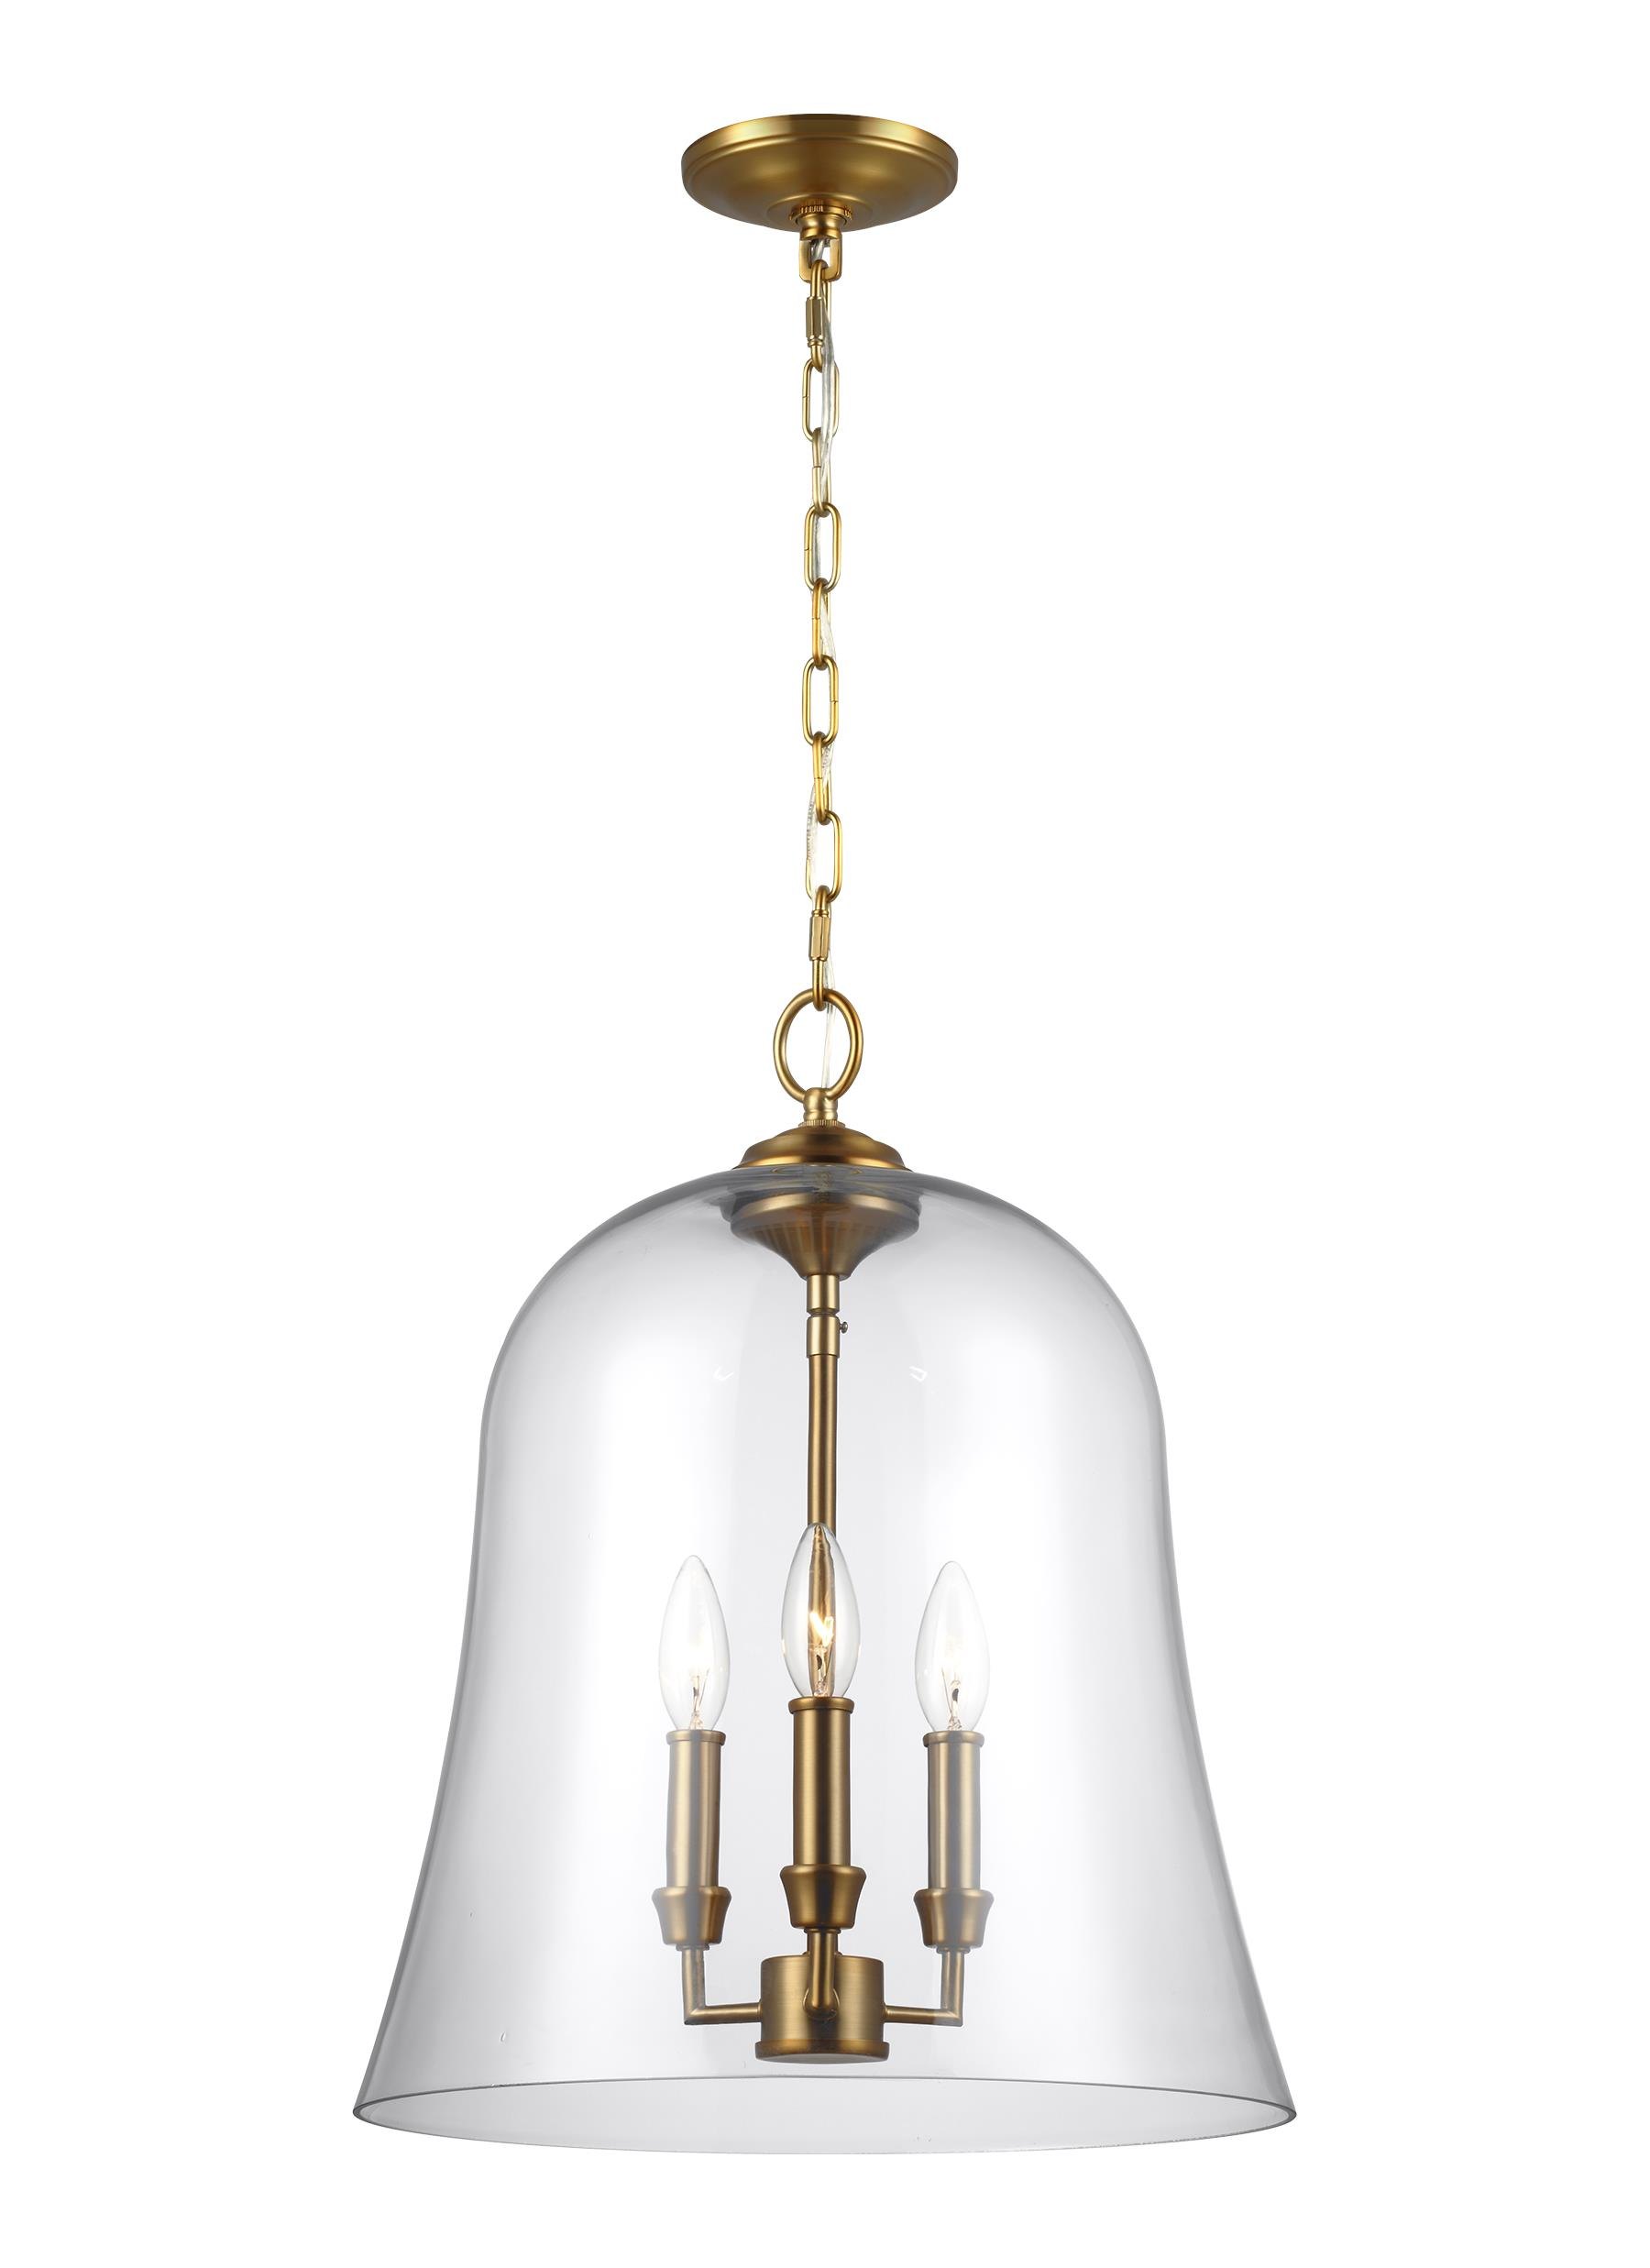 glass hallway pendant aubrey bhs chandelier light pinterest chandeliers frosted pin